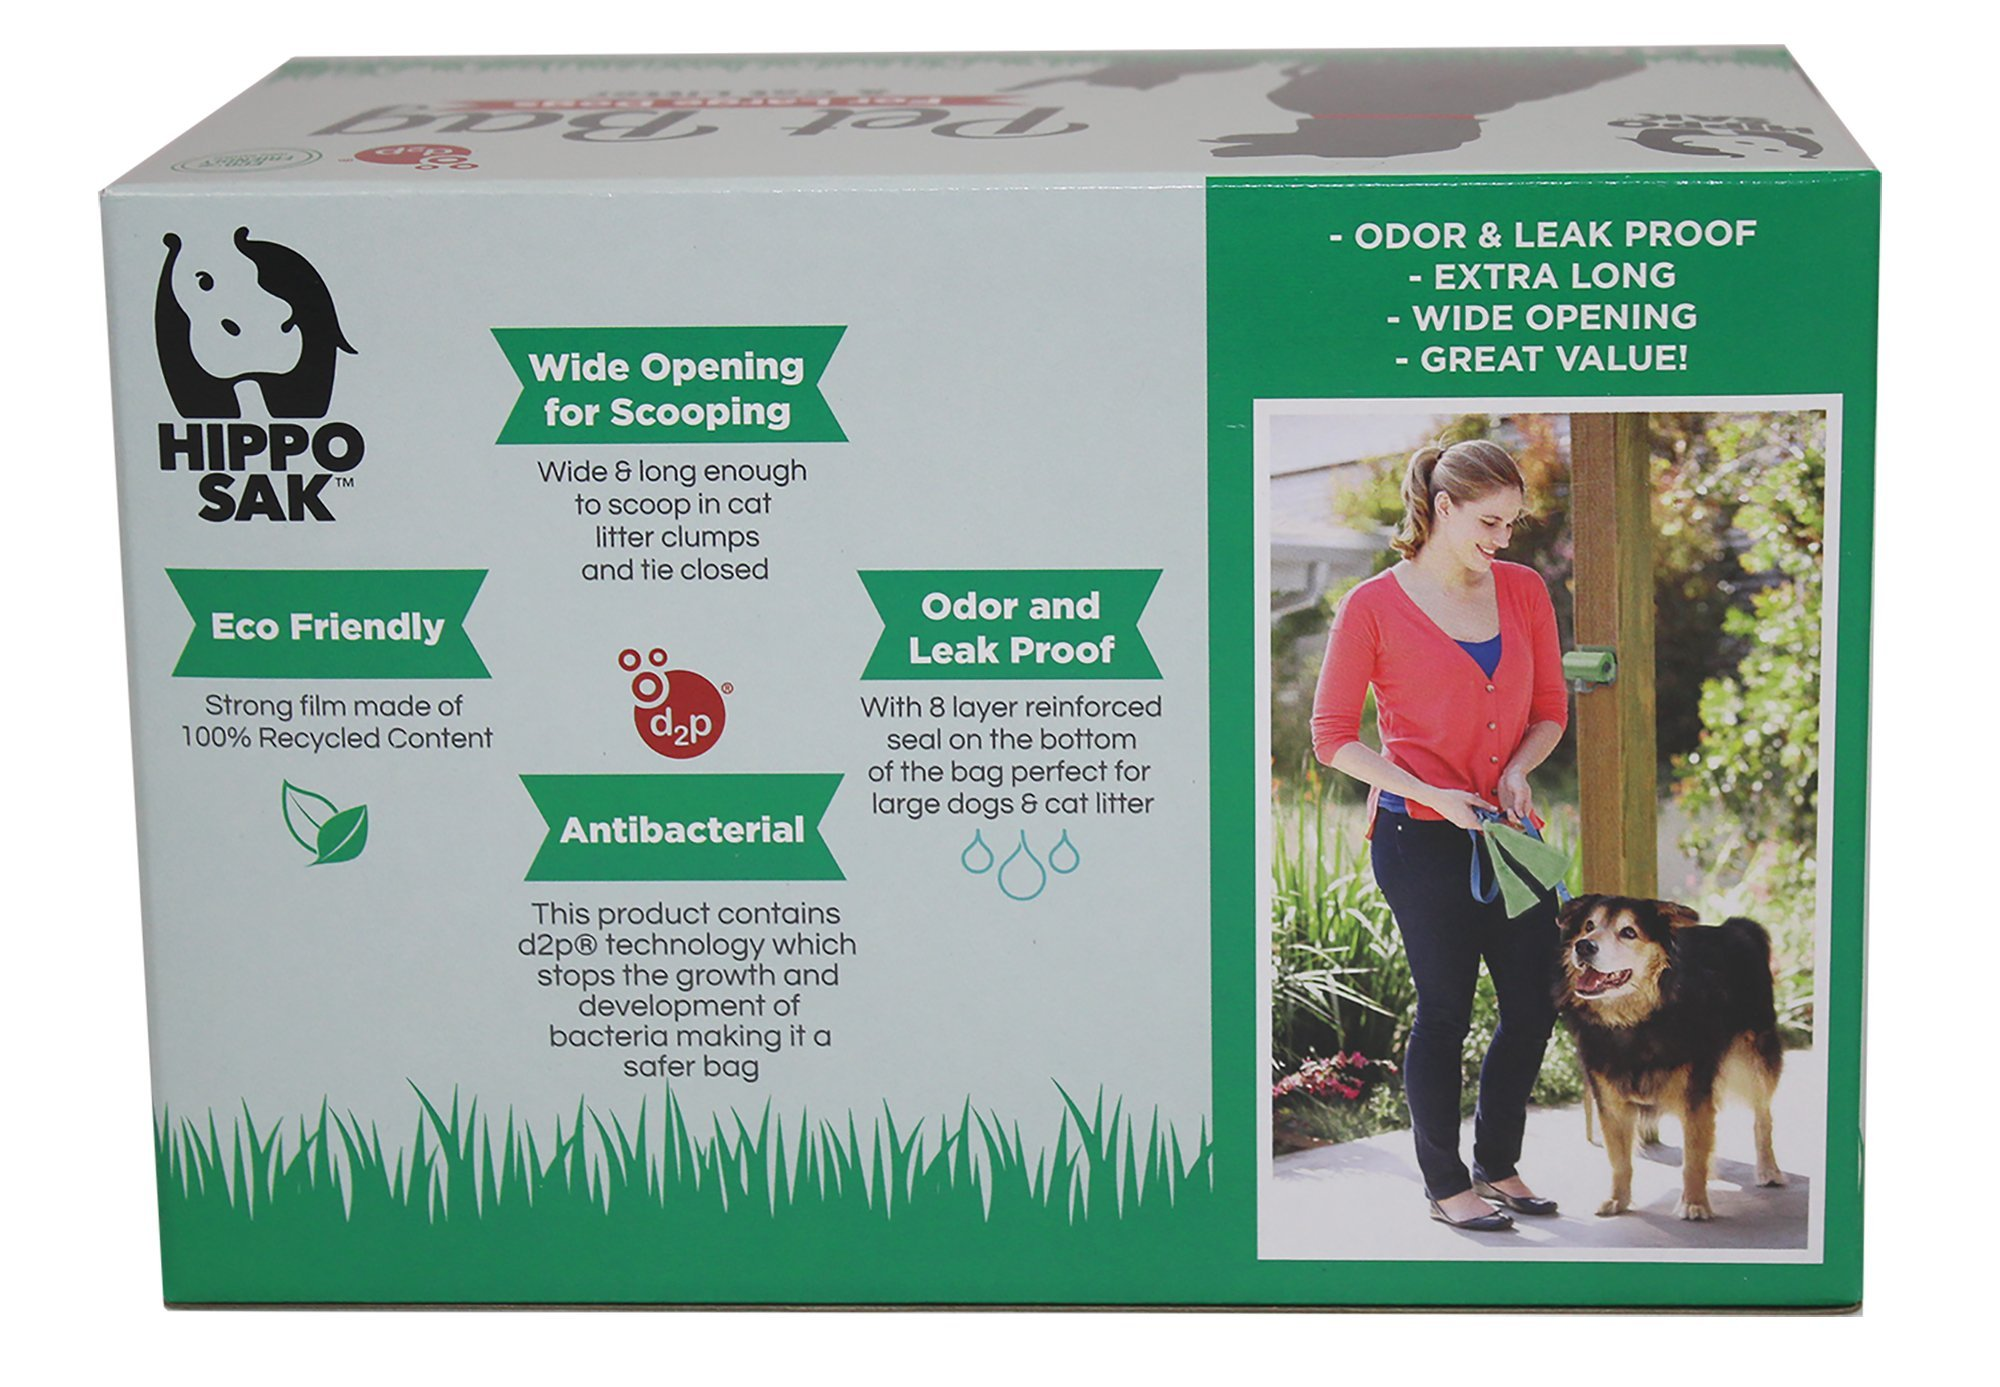 Hippo Sak Extra Large Pet Poop Bags for Large Dogs and Cat Litter, 240 Count by Hippo Sak (Image #2)